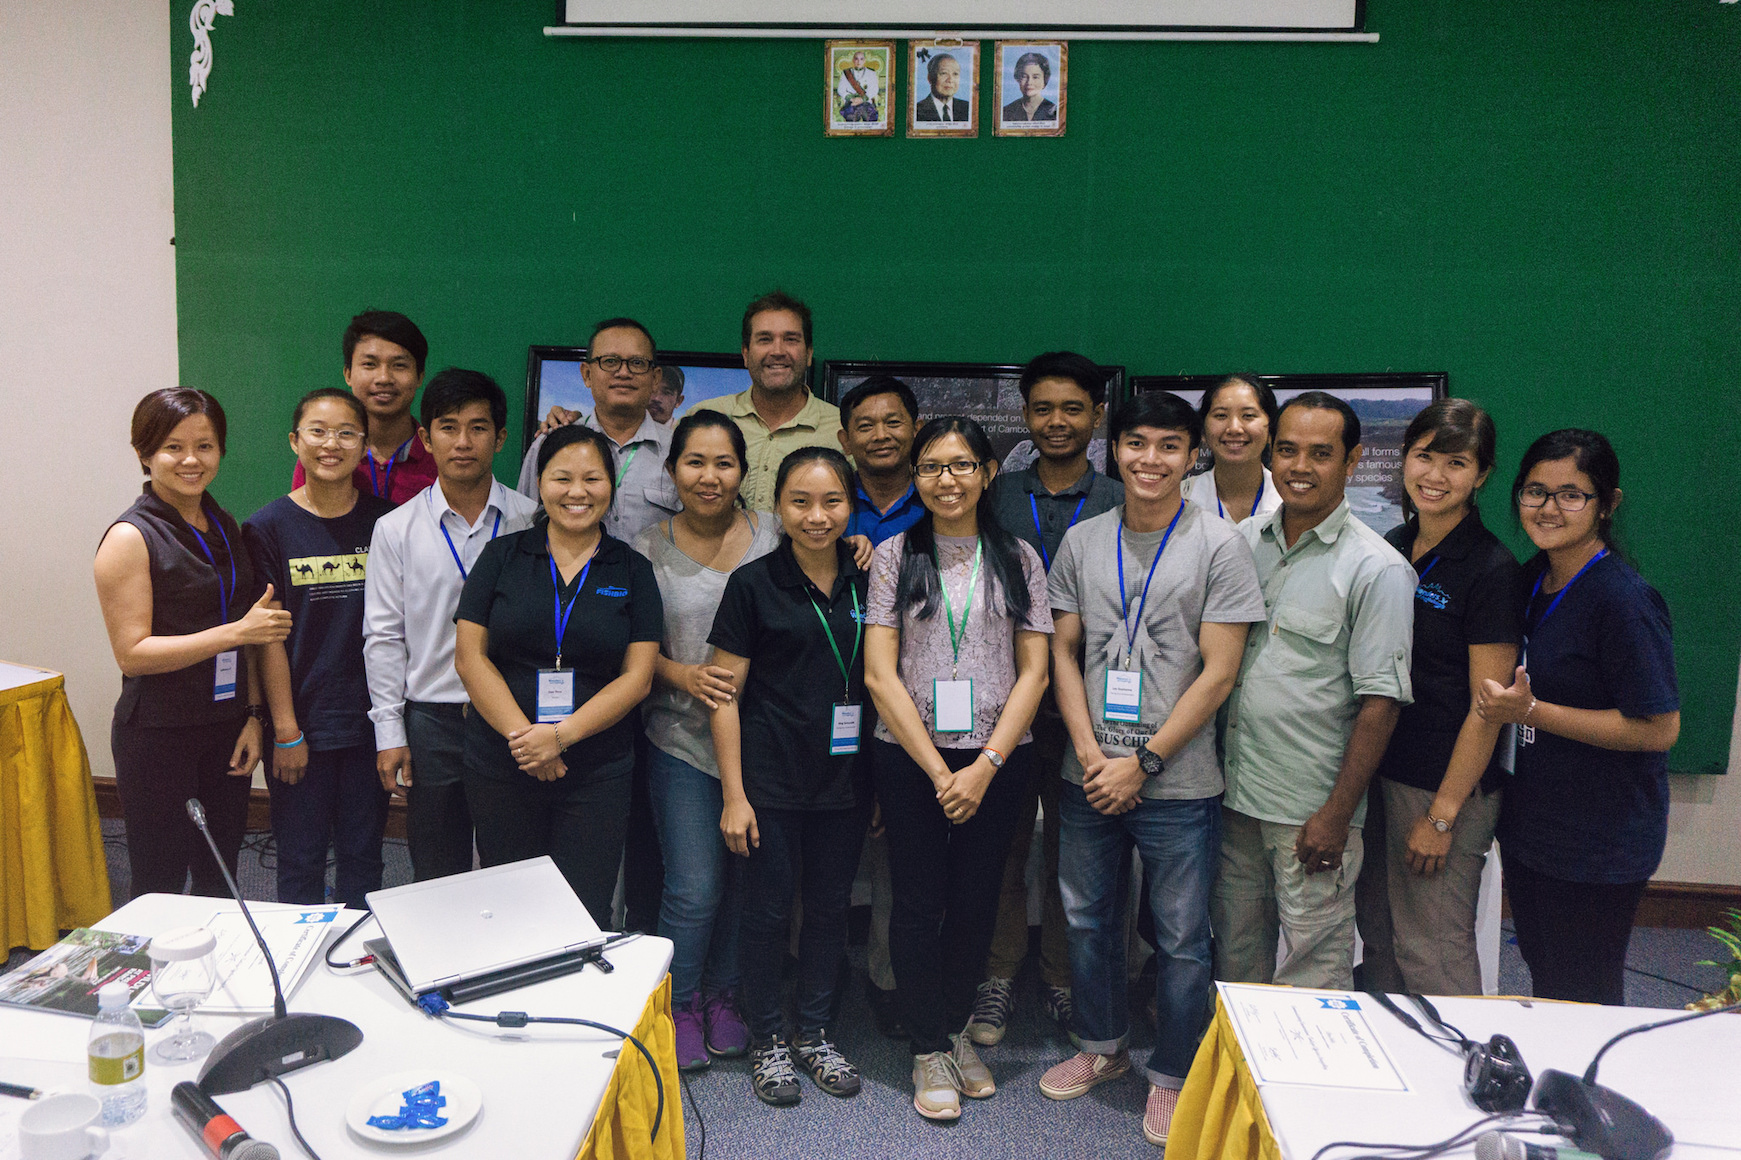 Mekong Conservation Workshop group photo